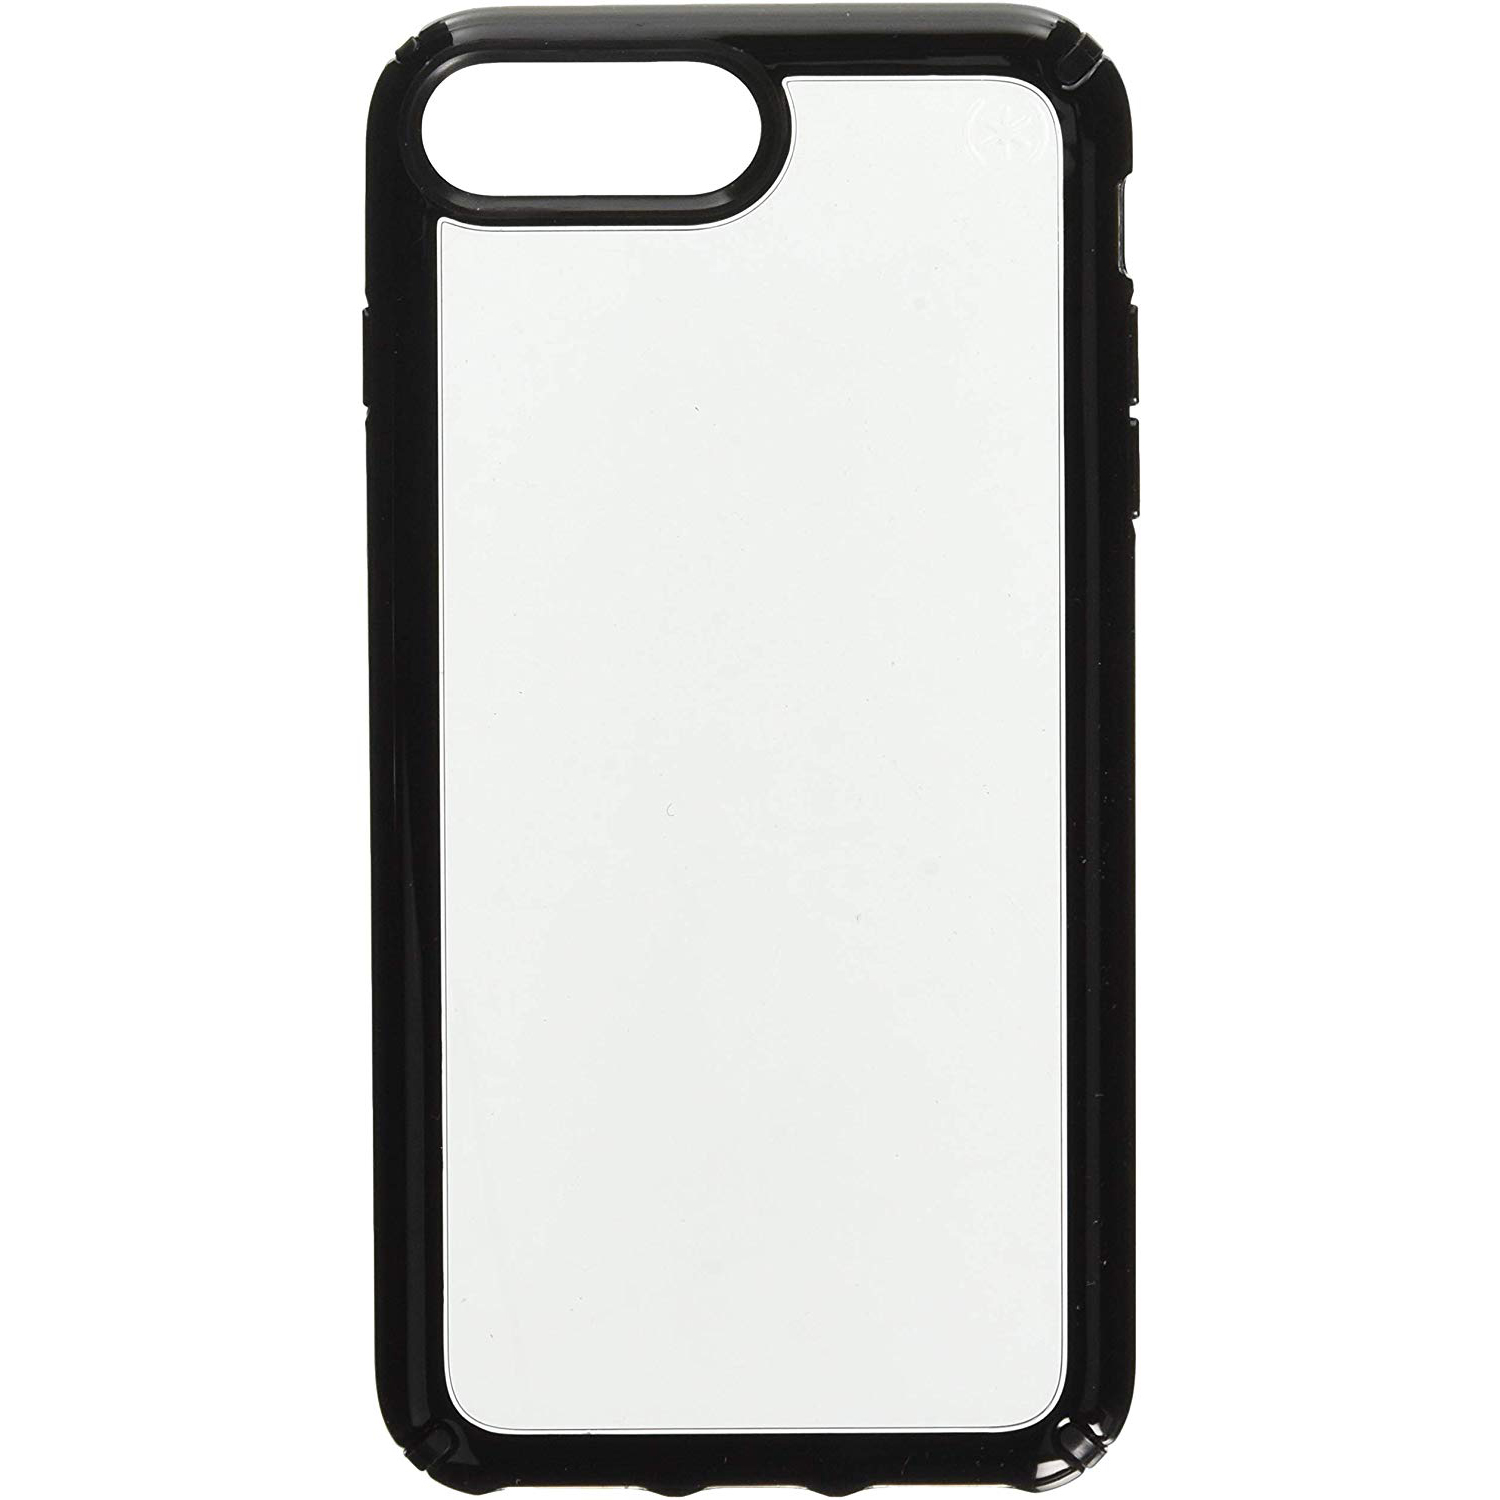 Speck Presidio Show Case for iPhone 8 Plus - Clear/Black